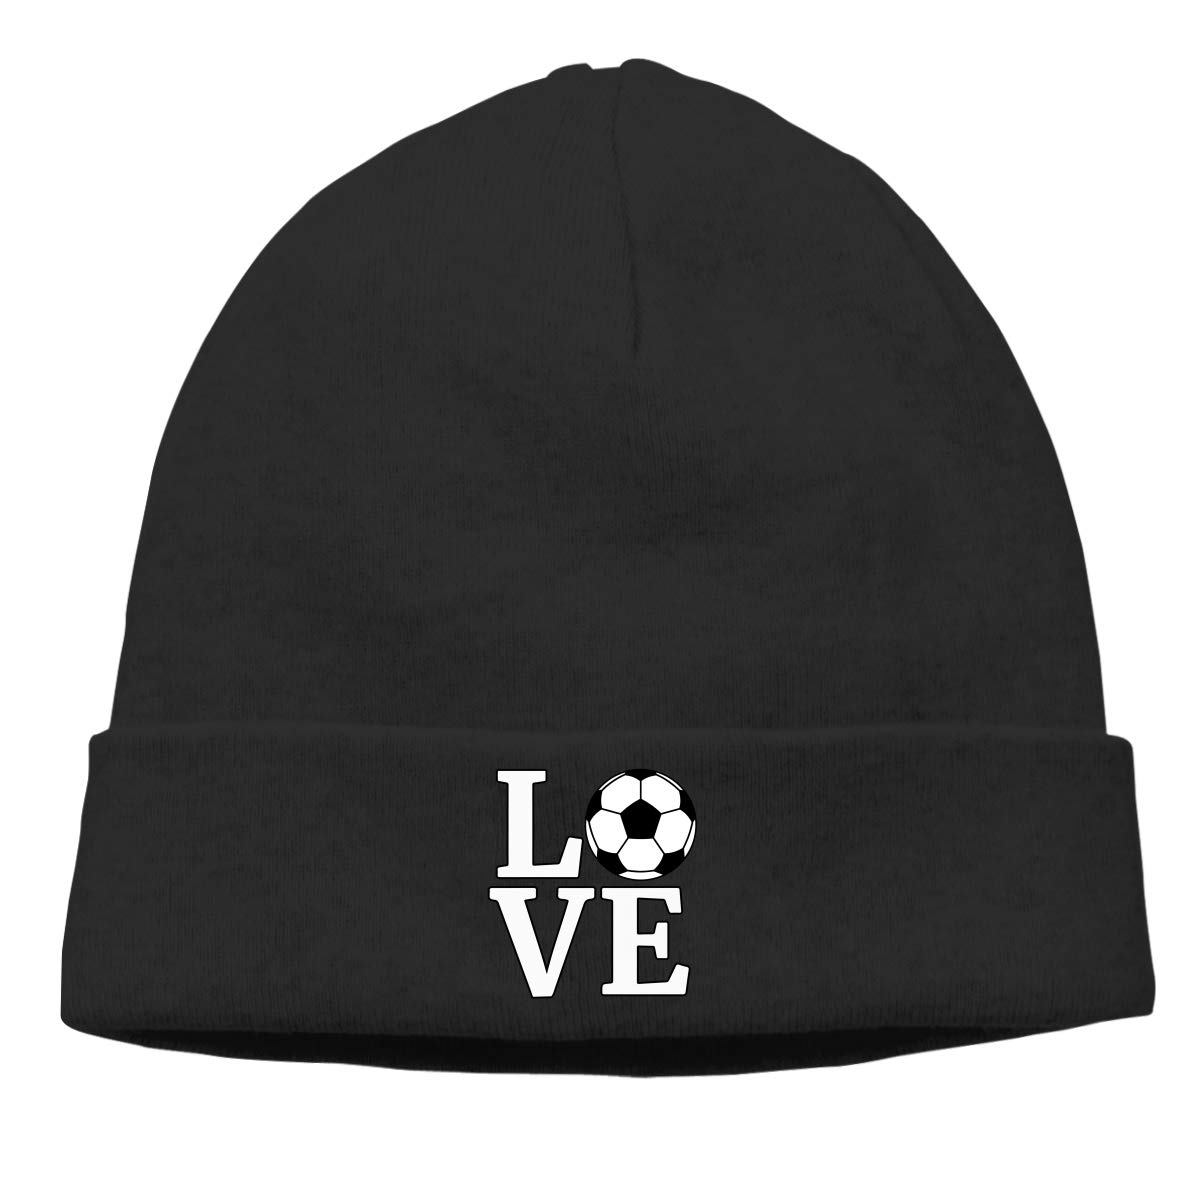 Love Soccer Football Men Womens Solid Color Beanie Hat Thin Stretchy /& Soft Winter Cap